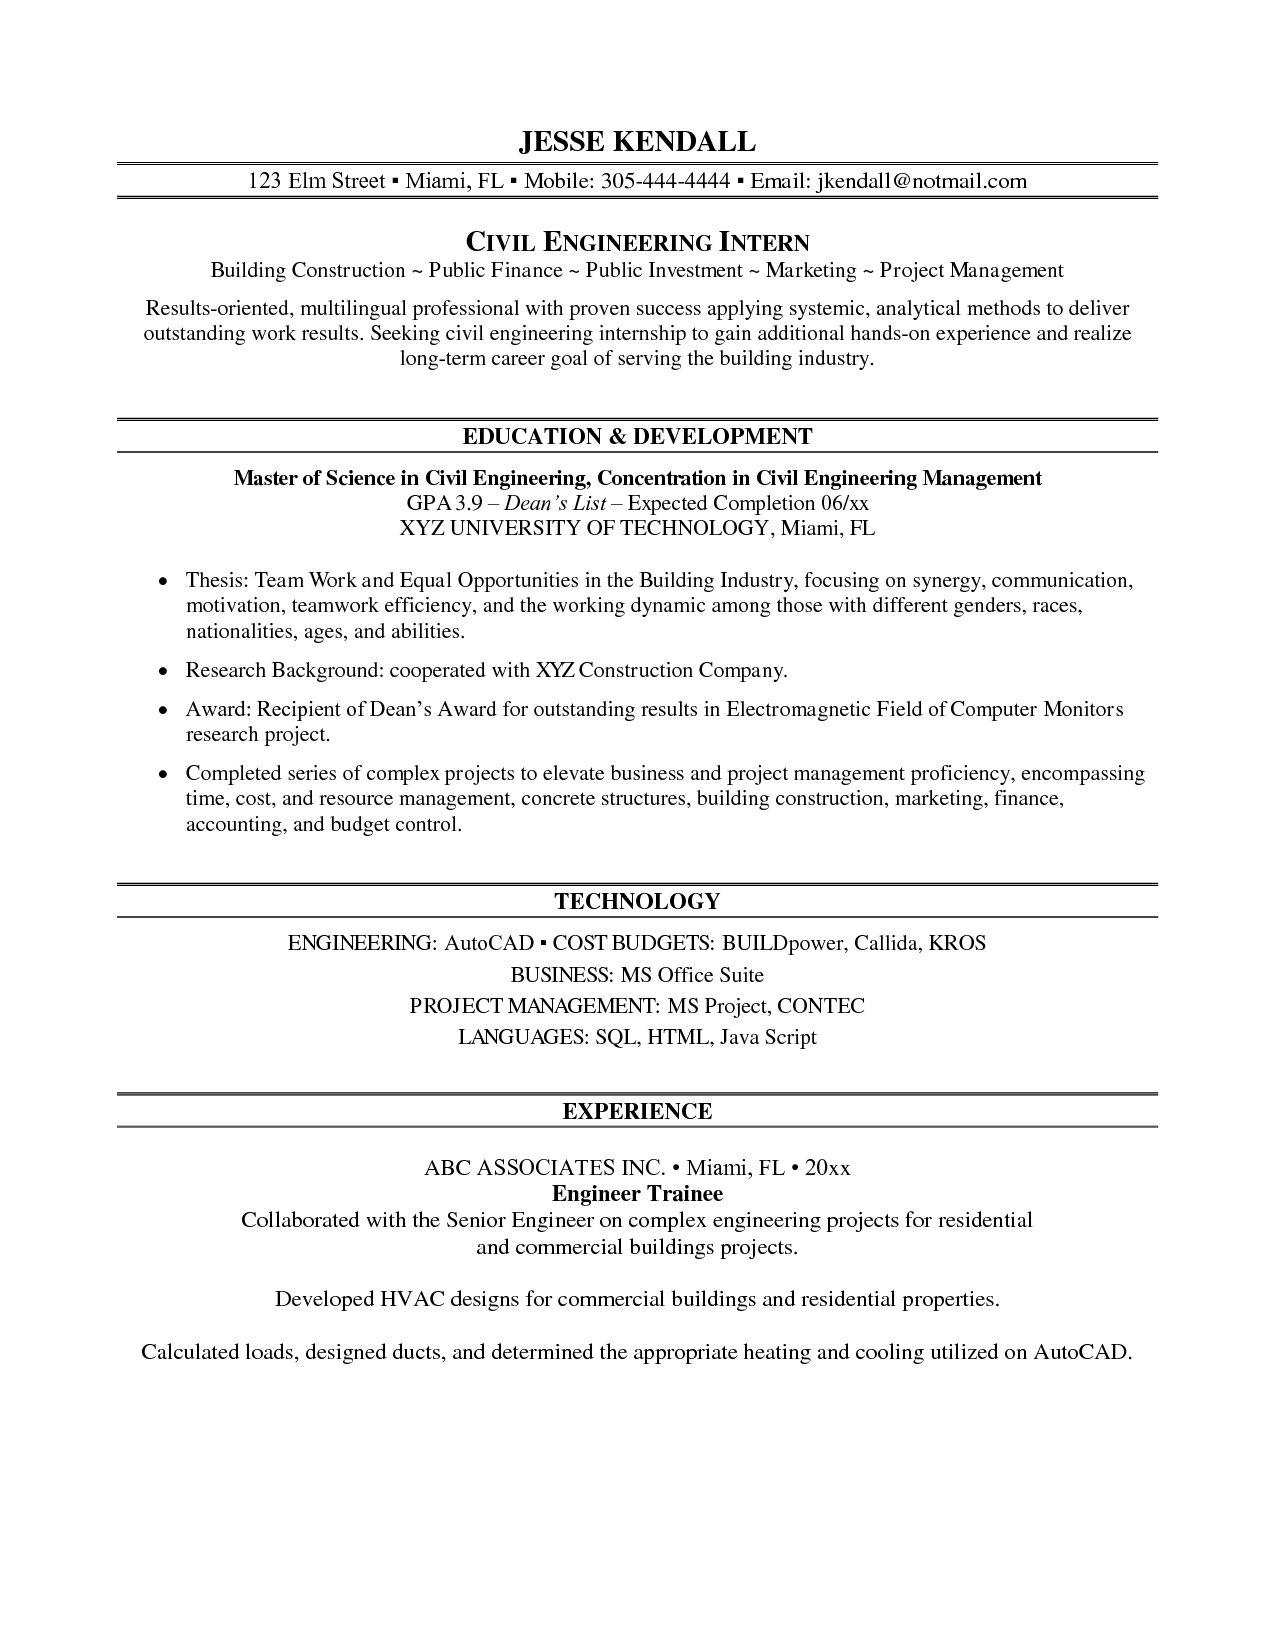 Internship On Resume Best Template Collection Http Www Jobresume